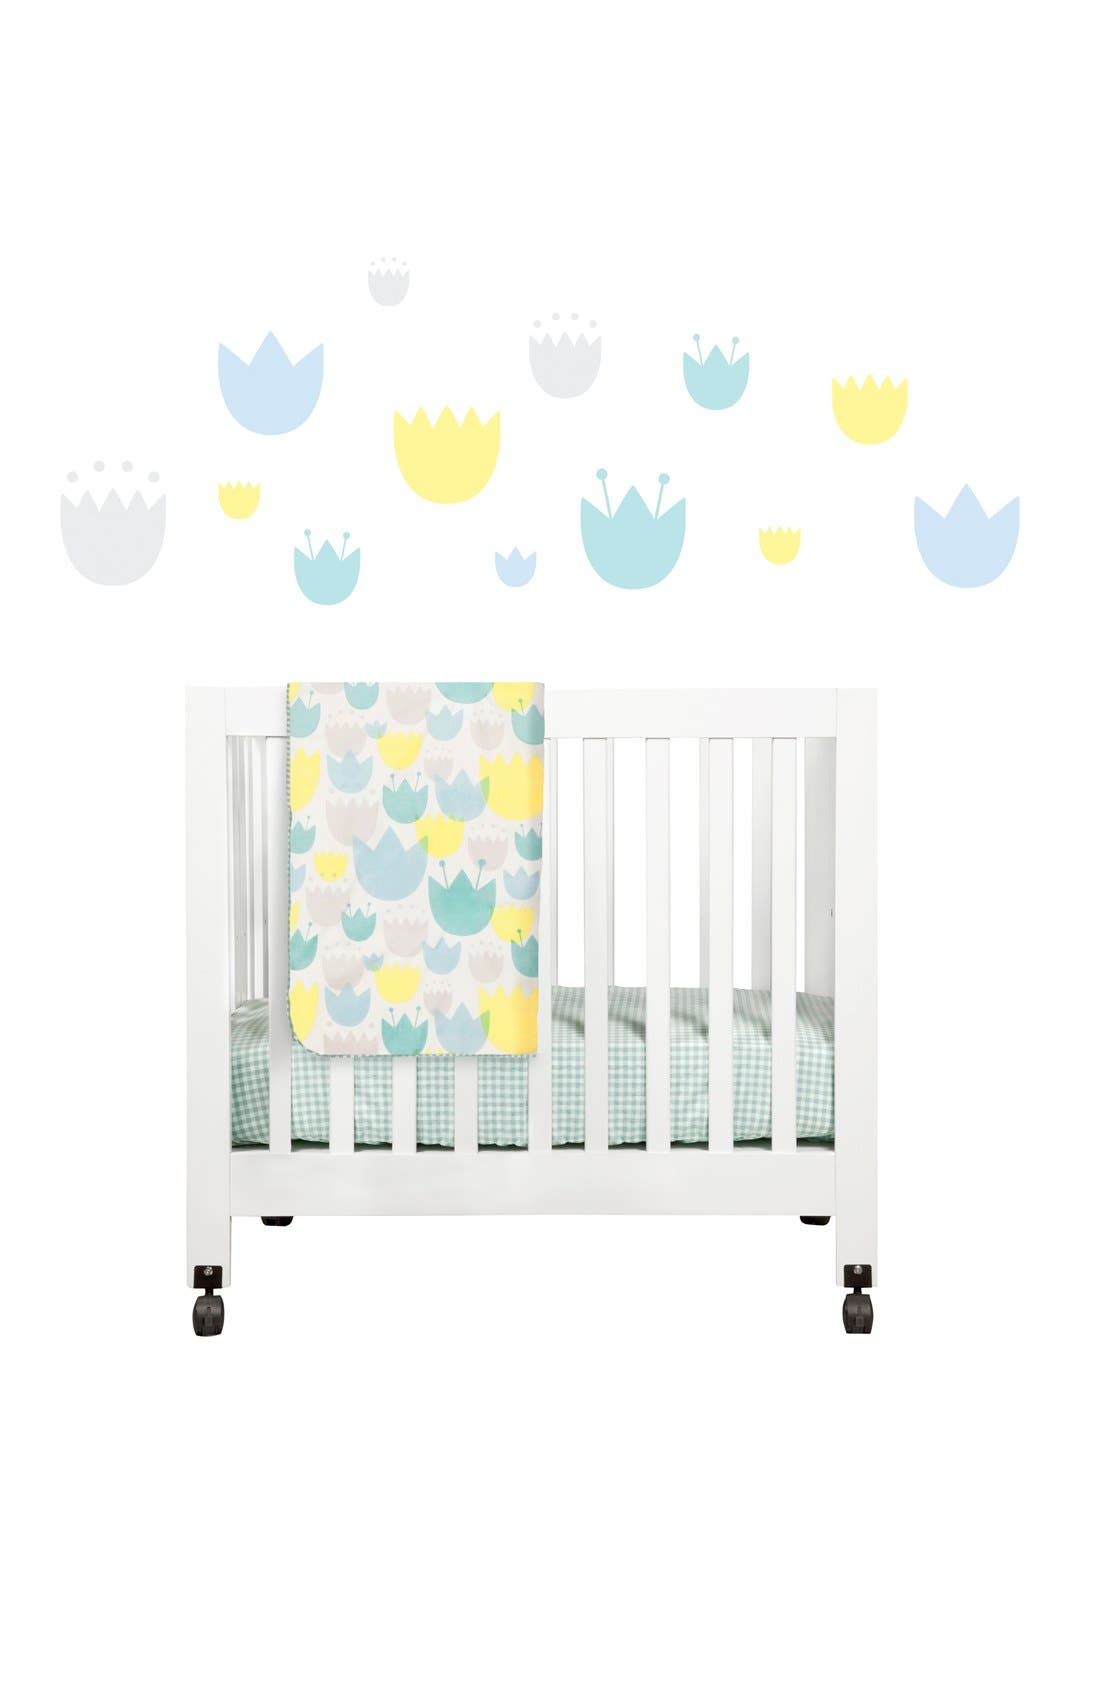 Alternate Image 1 Selected - babyletto 'Garden' Mini Crib Sheet, Changing Pad Cover, Stroller Blanket & Wall Decals